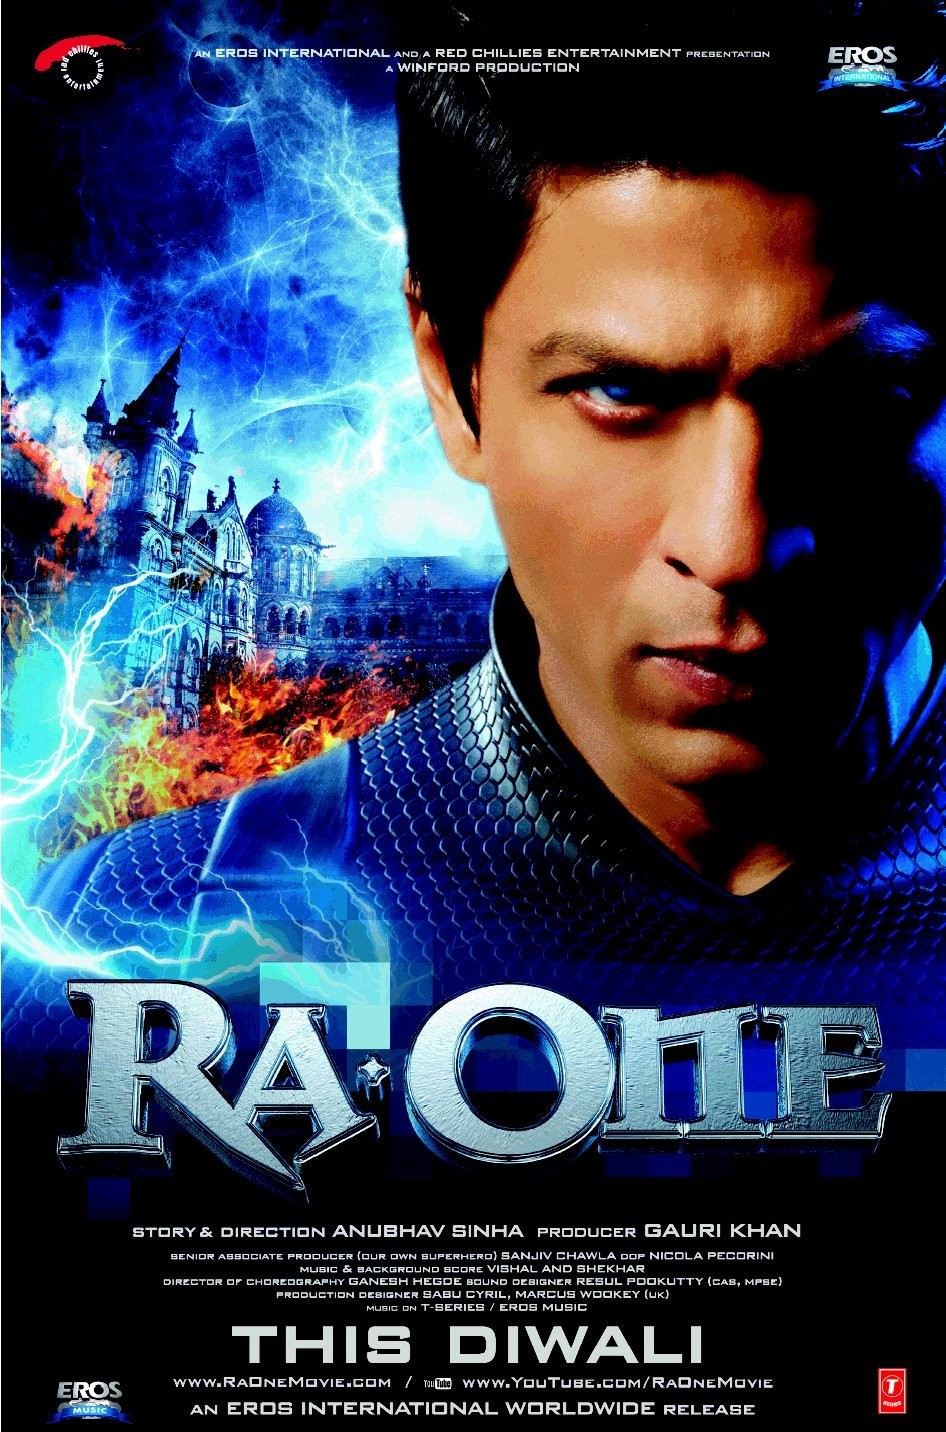 ver online ra one